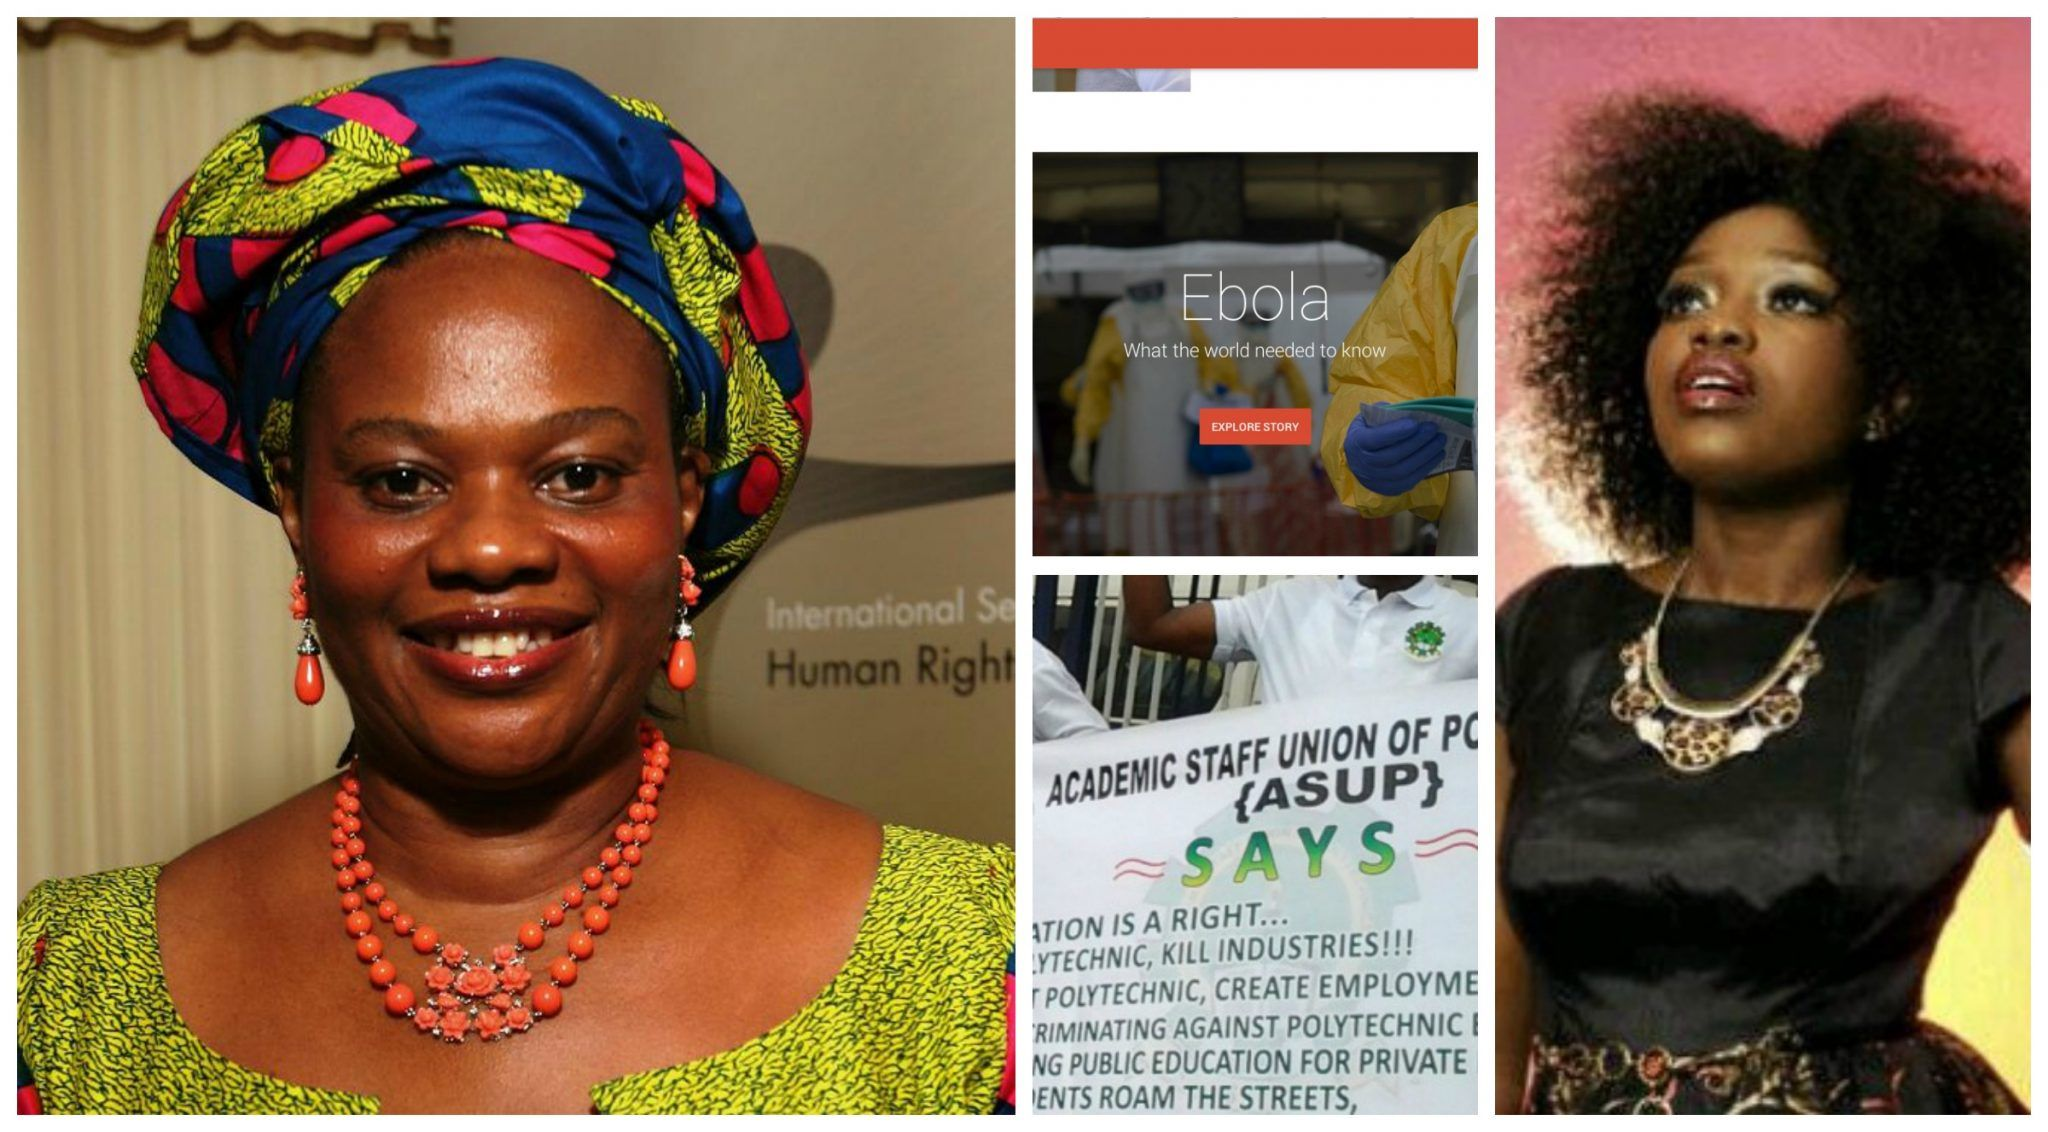 Google: Ebola, Kefee to Akunyili and other Nigeria search trends of 2014